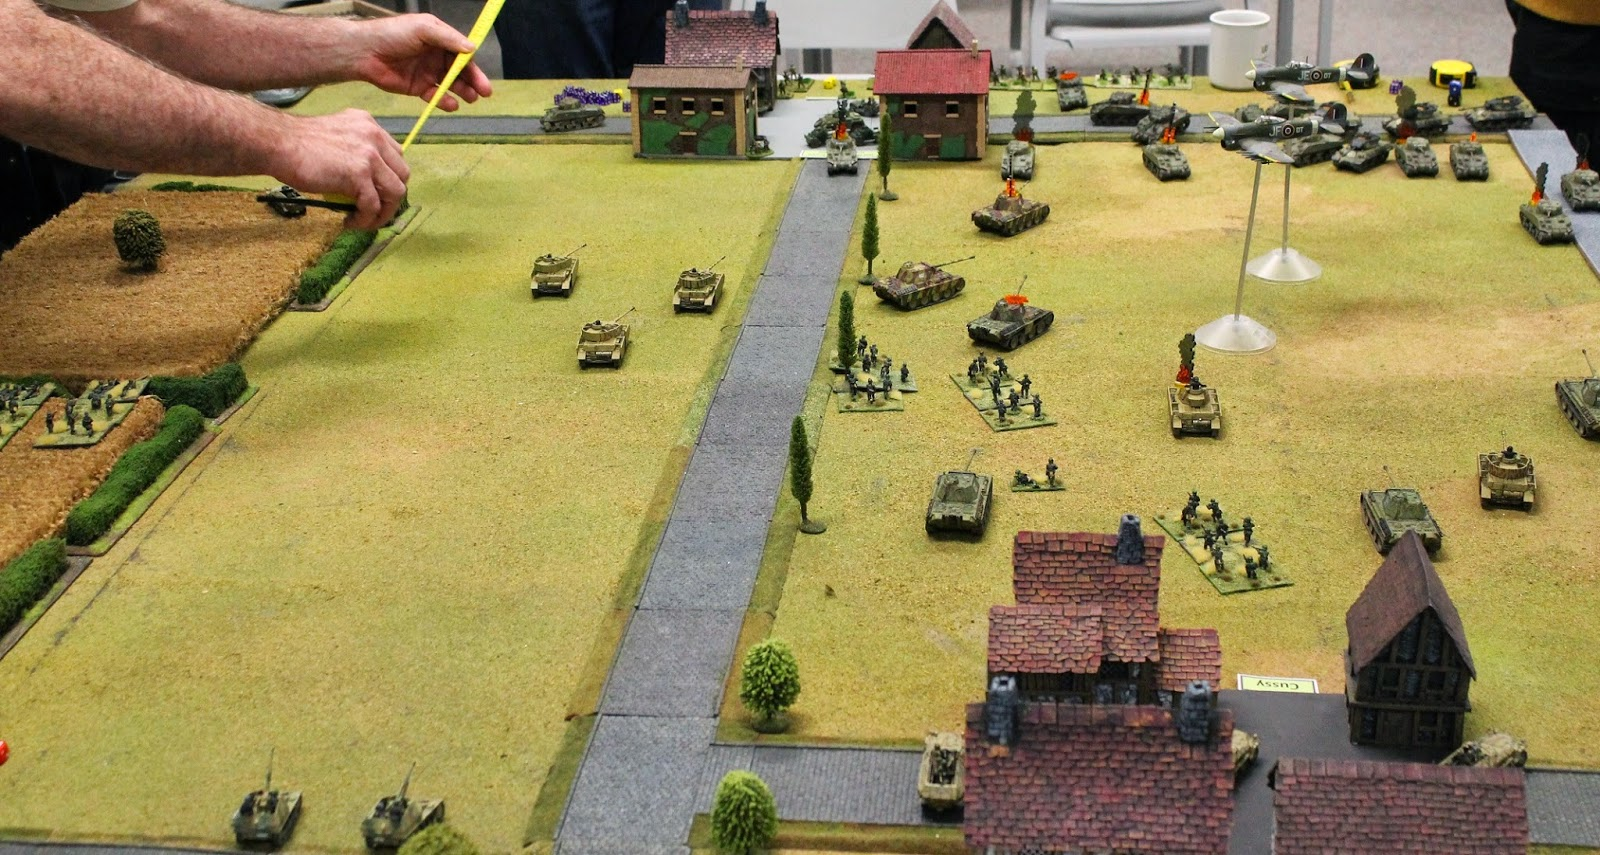 BGO Action at Authie 20mm game